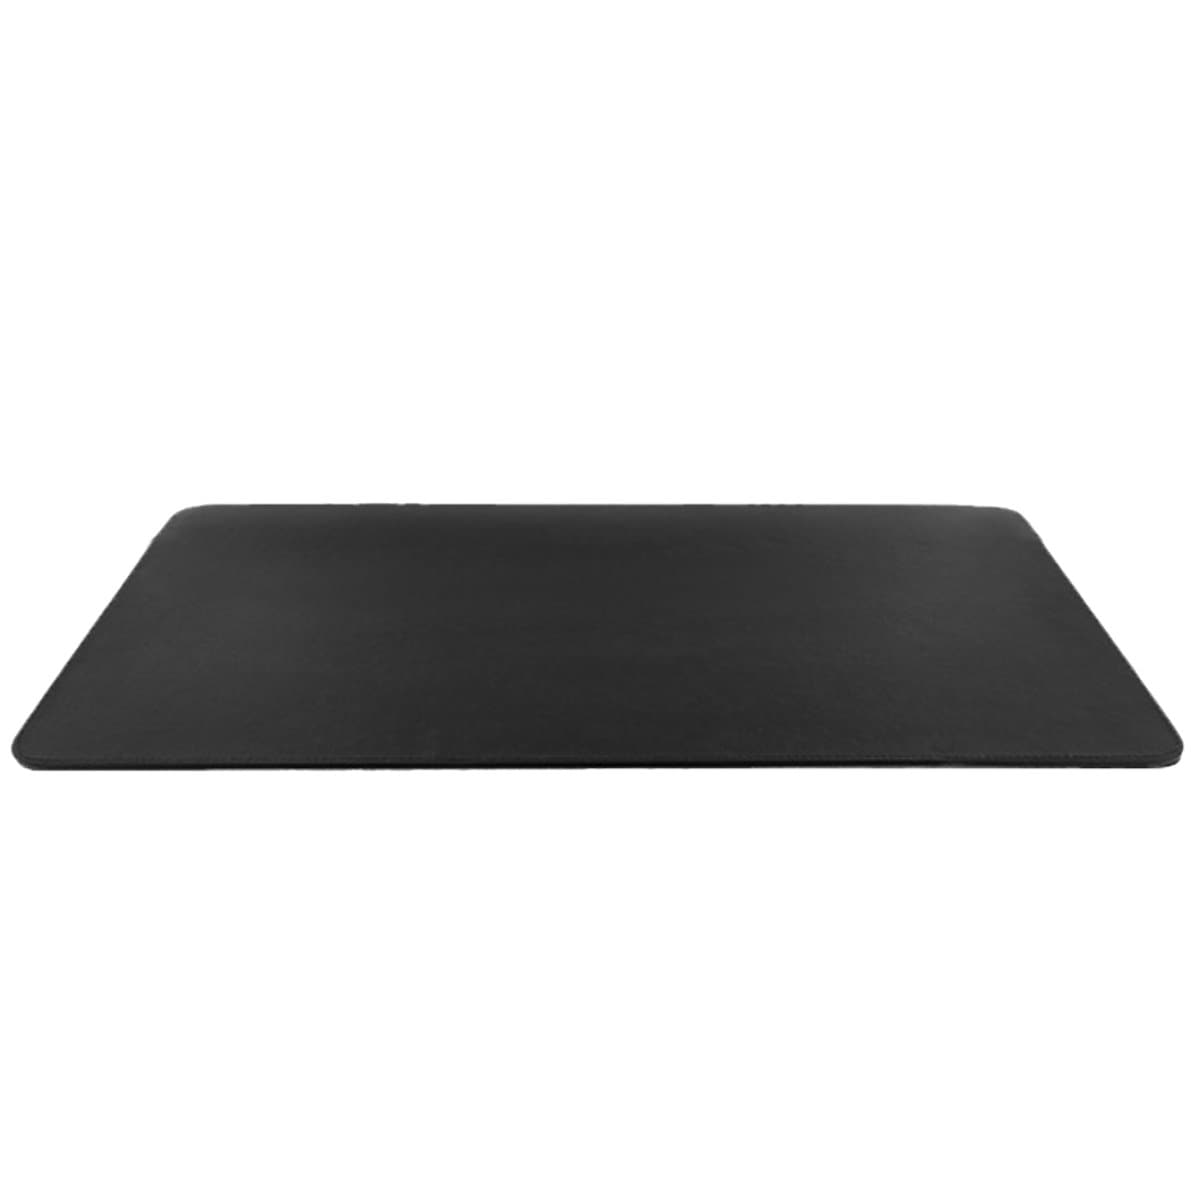 Konrad S. Desk Pad, 60 x 45cm, PU Leather, Black